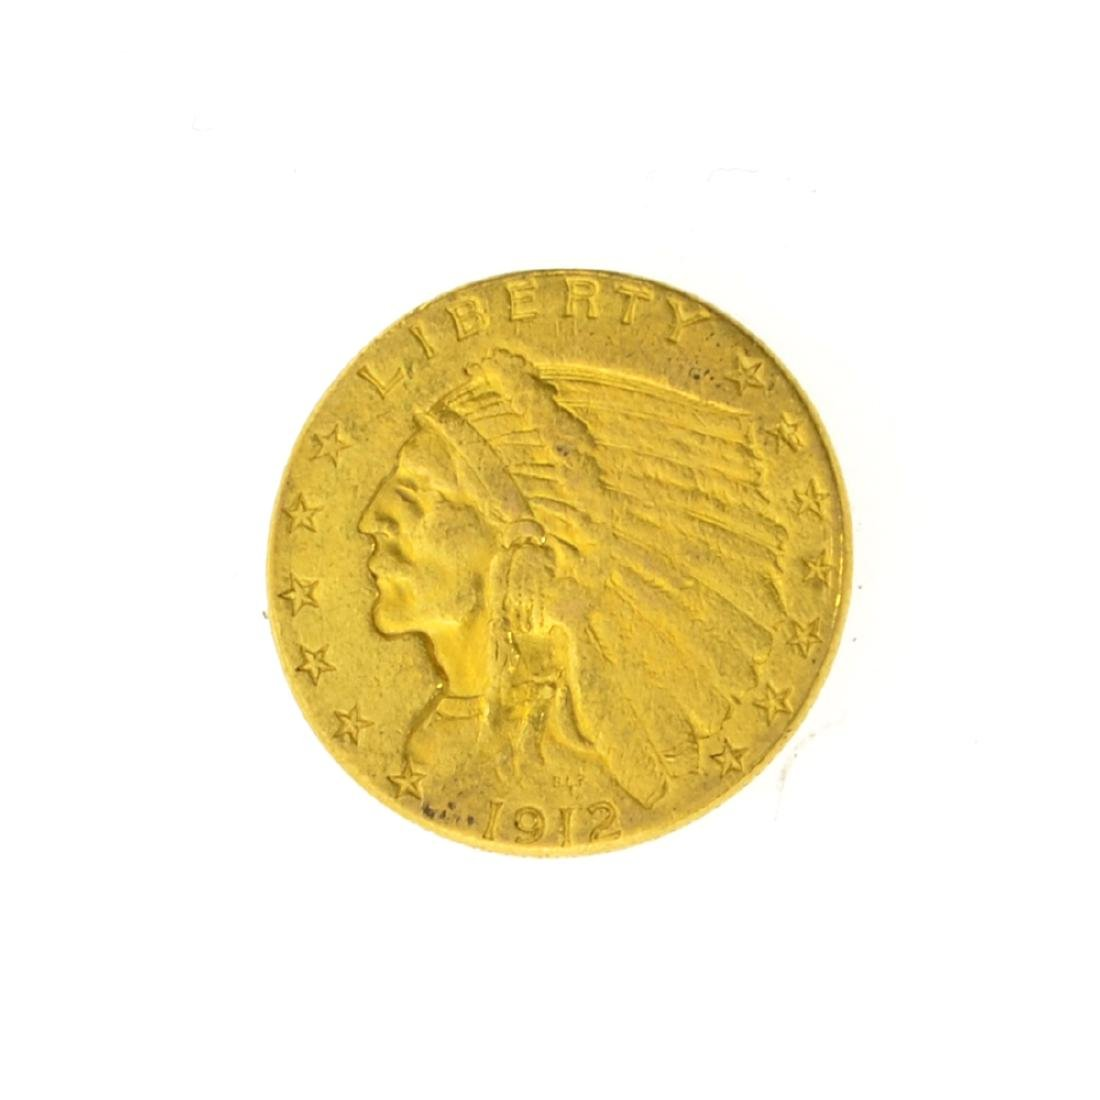 *1912 $2.50 U.S. Indian Head Gold Coin (JG)